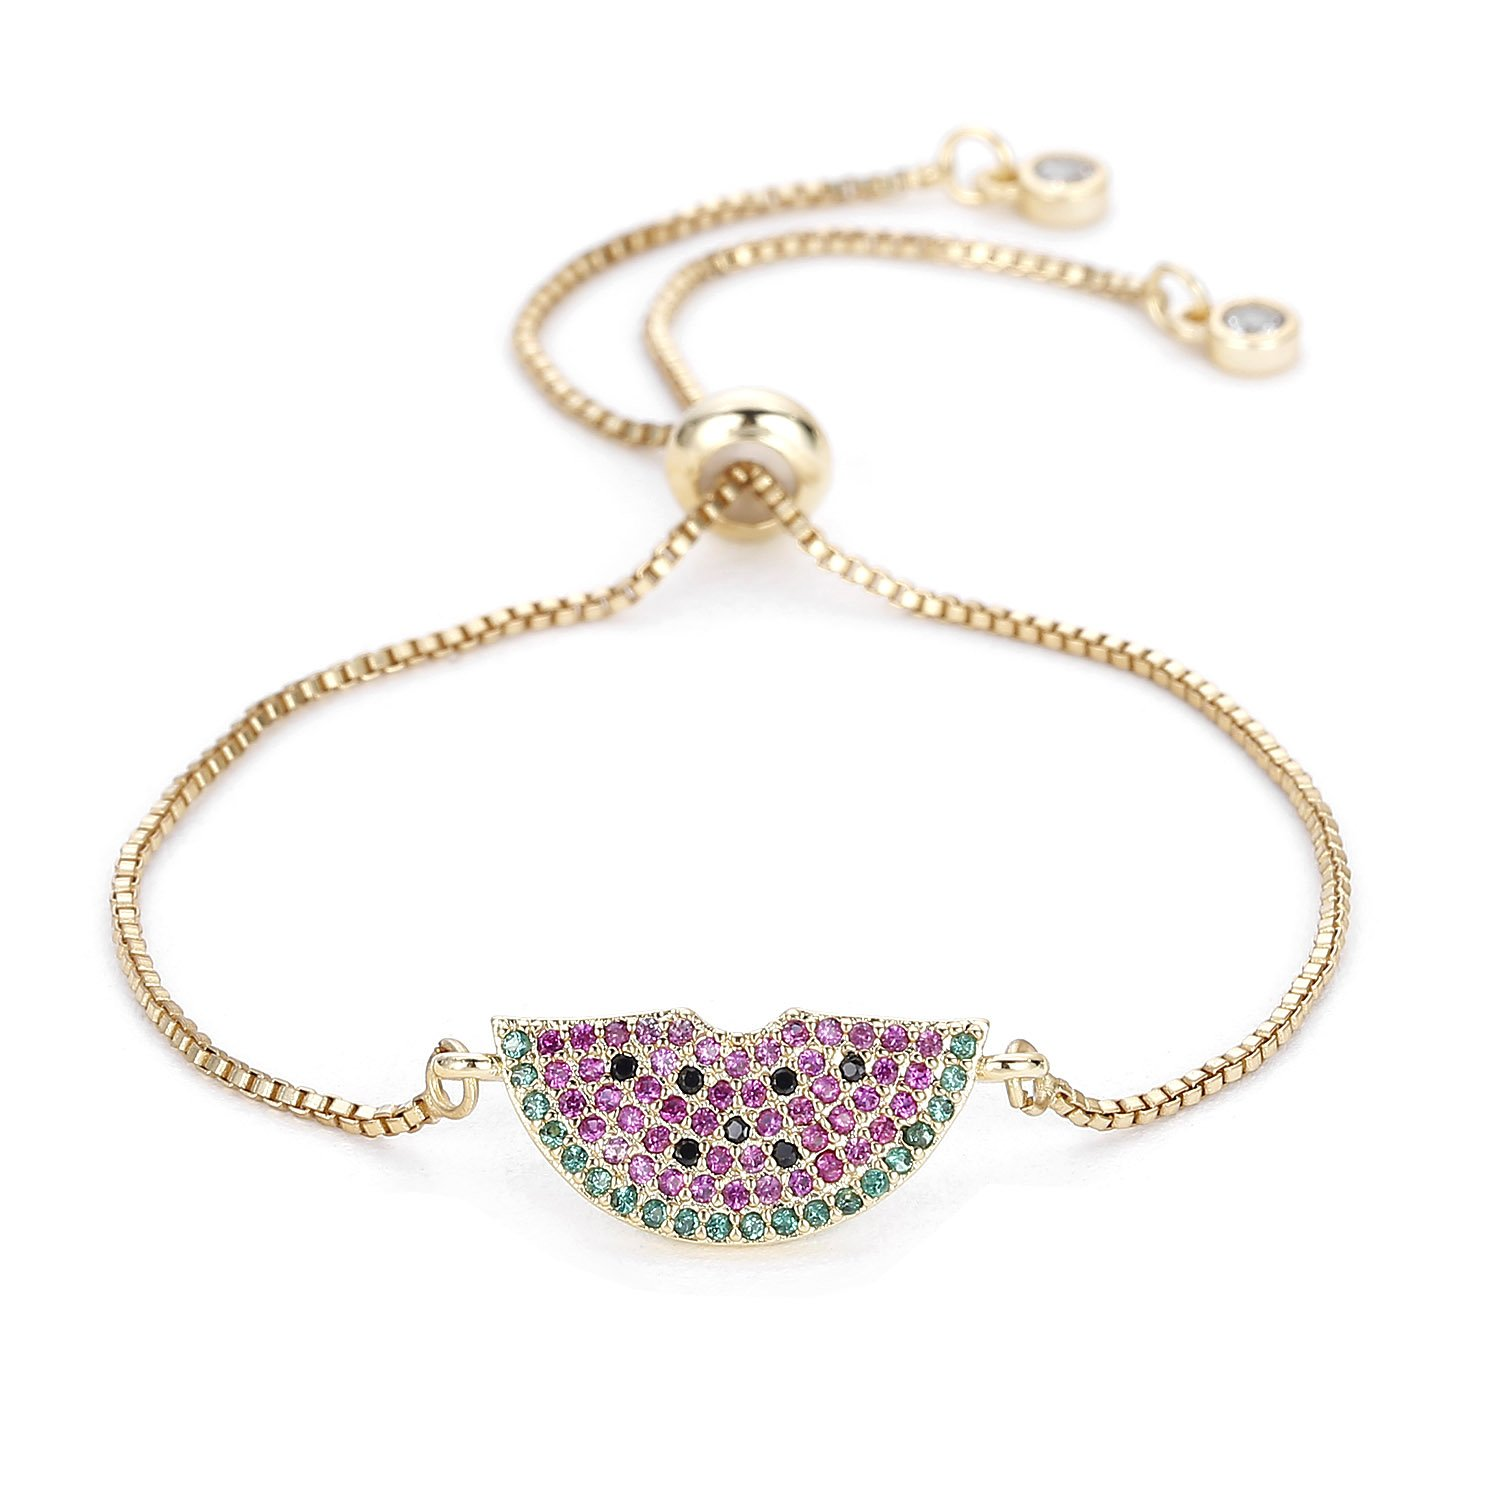 POSHFEEL Handcraft Micro Pave Watermelon Charm Bracelet Gold Plated Adjustable Chain, Cute for Summer